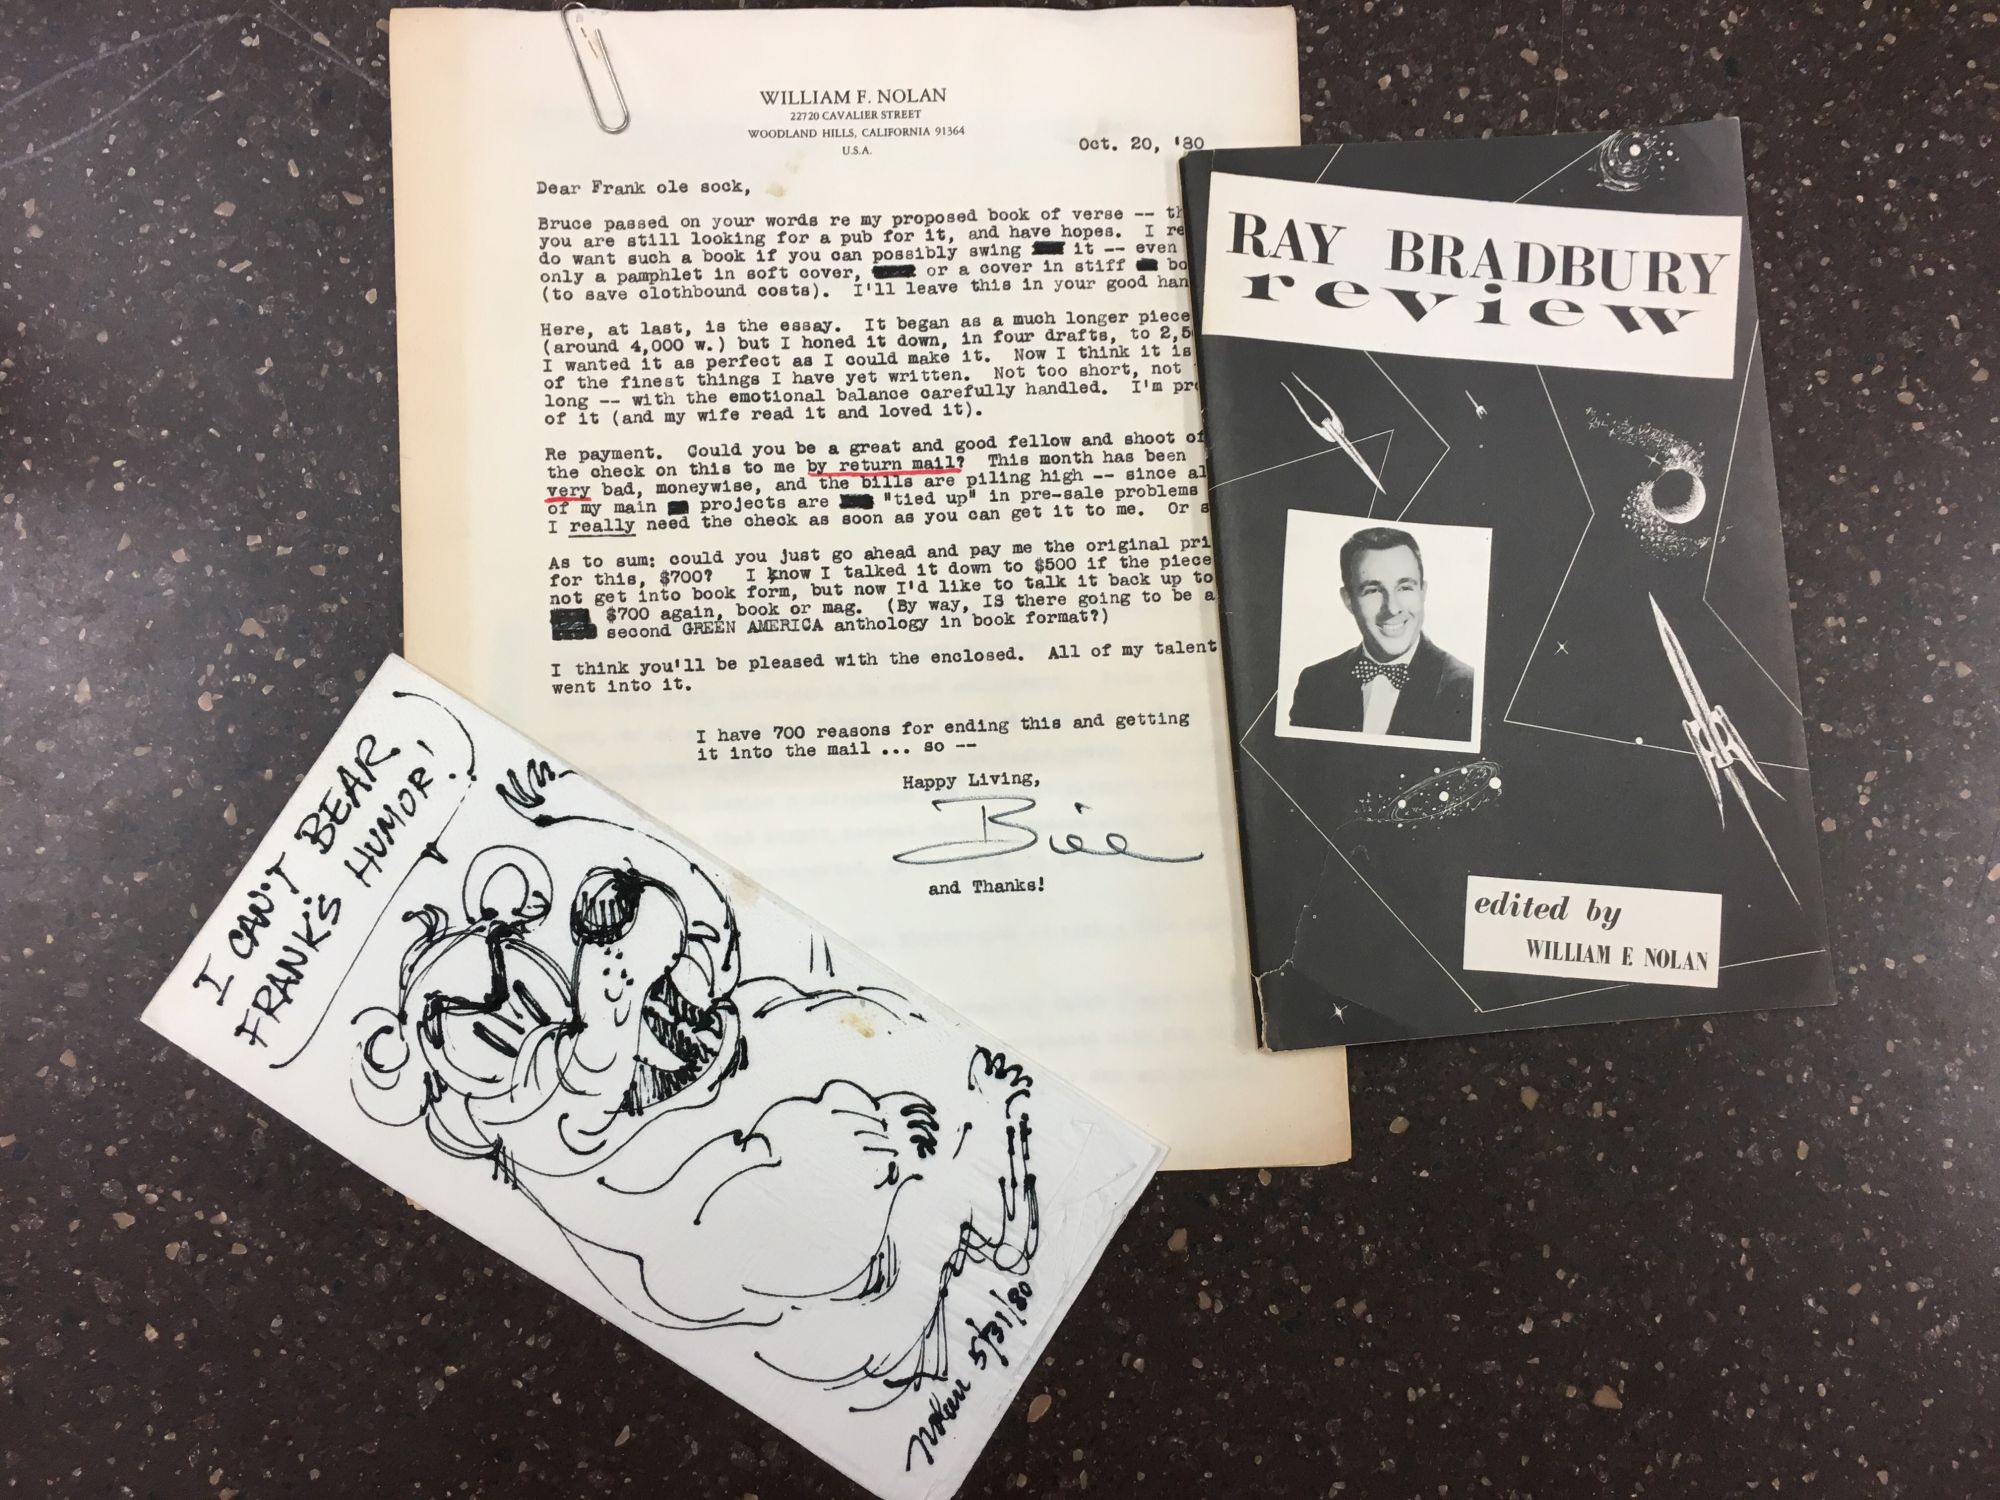 THREE ITEMS SIGNED BY WILLIAM F. NOLAN, INCLUDING THE RAY BRADBURY REVIEW, A NAPKIN DRAWING OF A BEAR, AND THE ORIGINAL MANUSCRIPT OF 'THE TREES OF YESTERDAY'. William F. Nolan, Ray Bradbury.